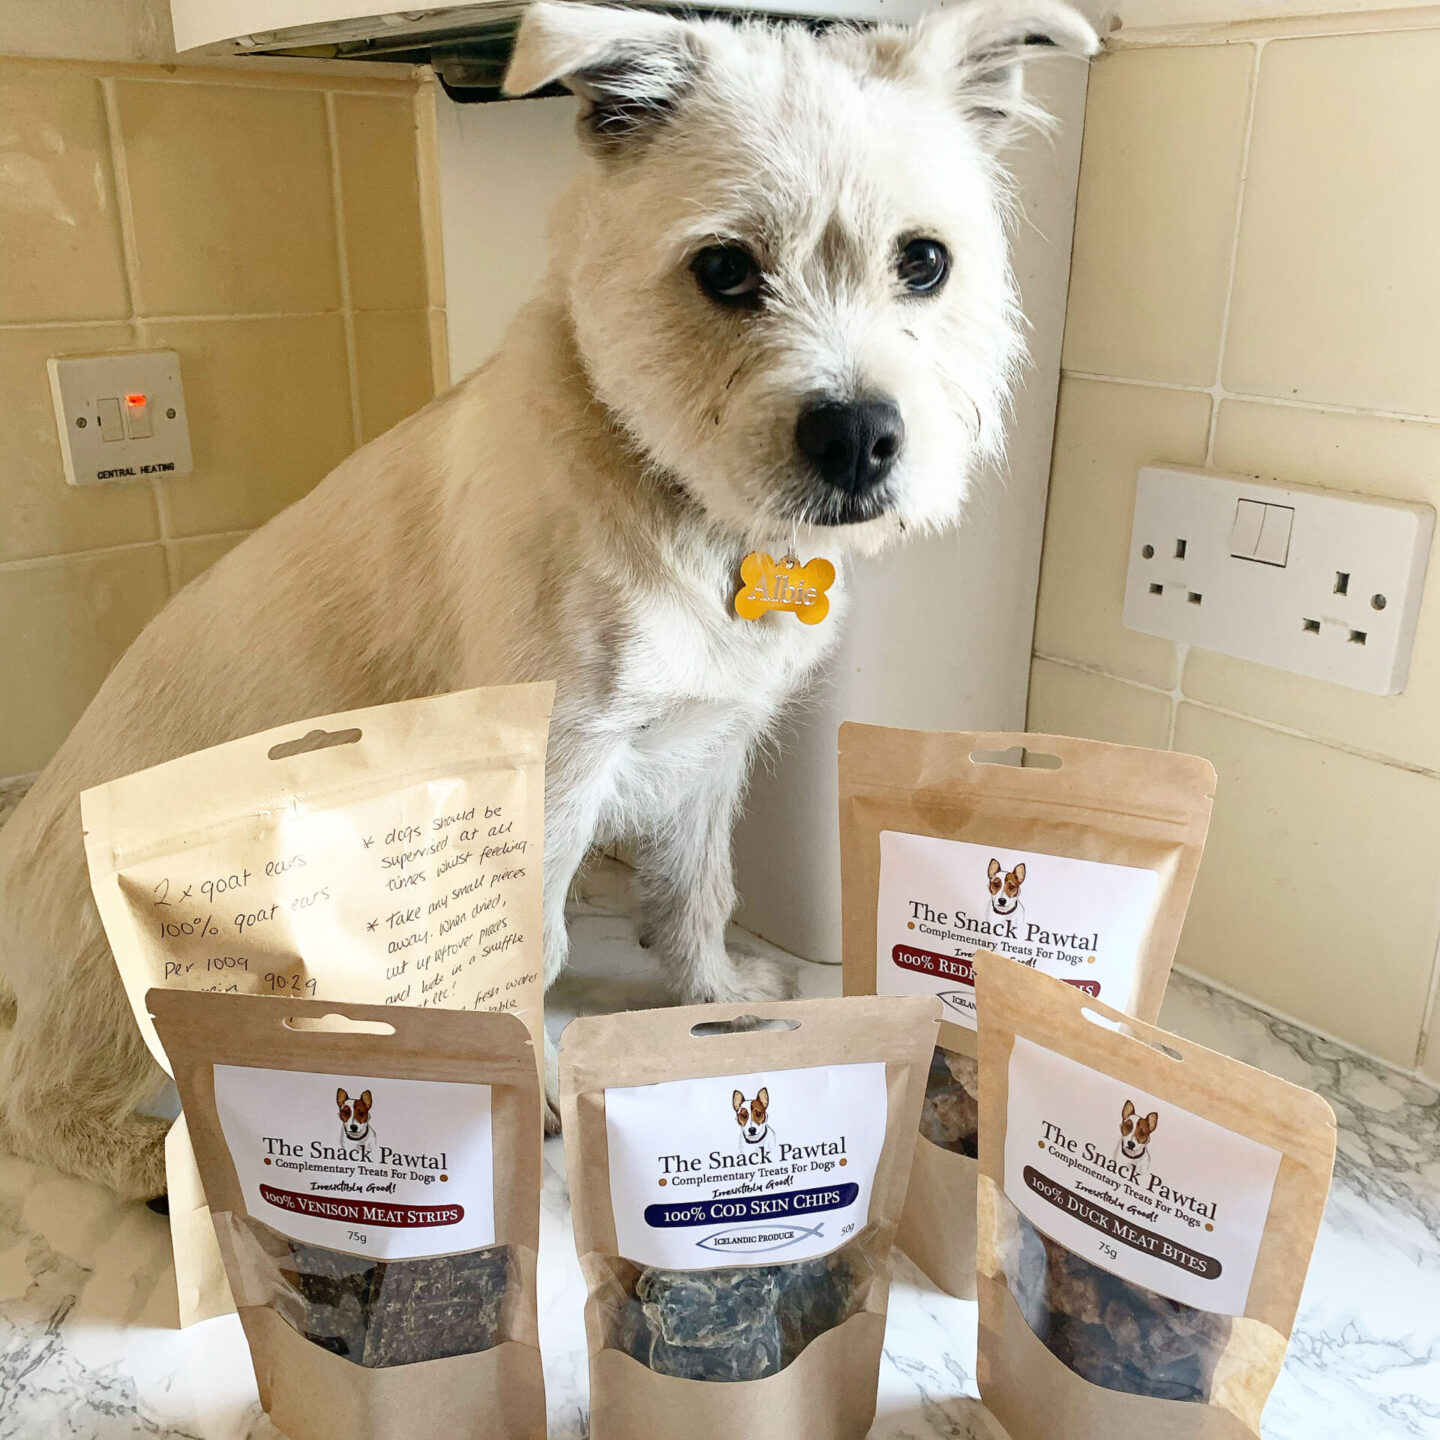 The Snack Pawtal natural raw diet treats for dogs sat next to a westie dog.